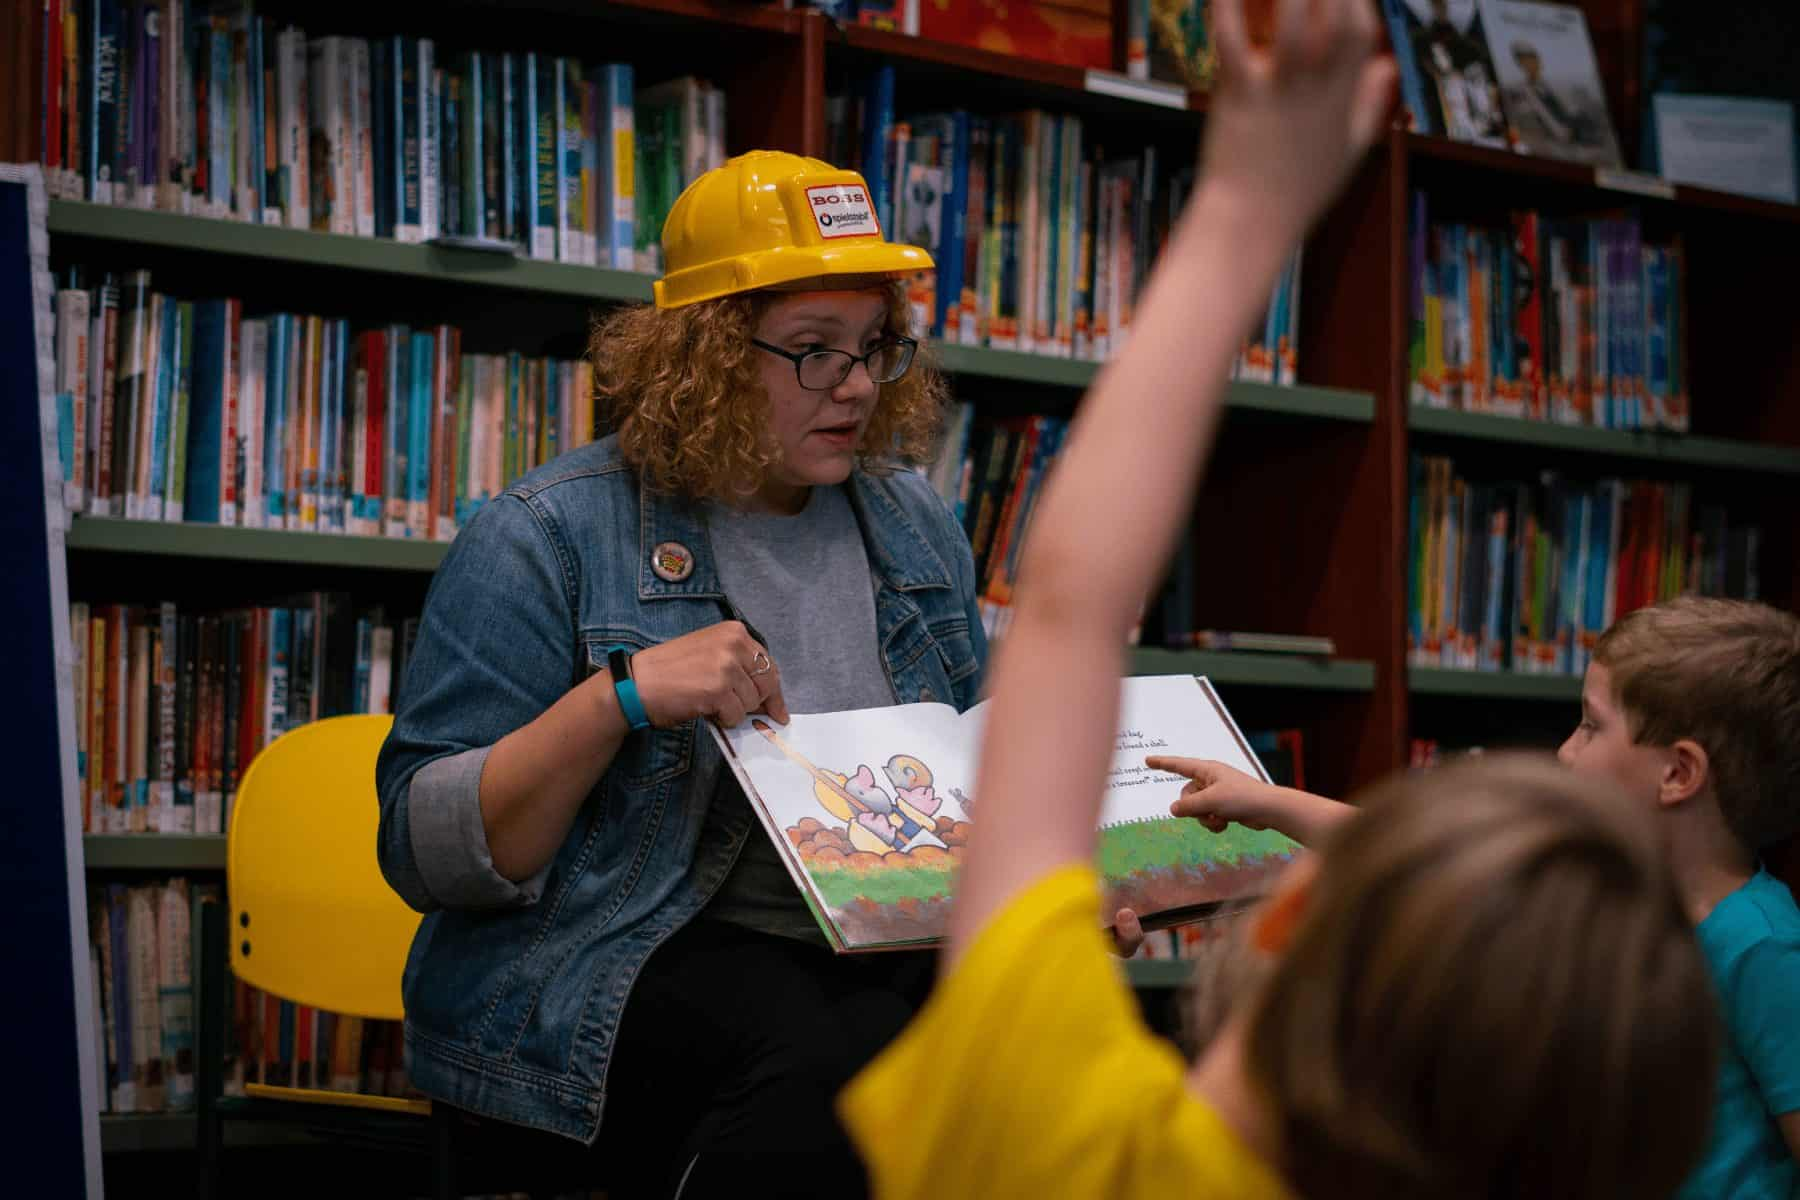 Story time events across the various York County Libraries locations aren't just reading books; they also encourage social interaction and movement. (Photo by Caleb Robertson for Our York Media)